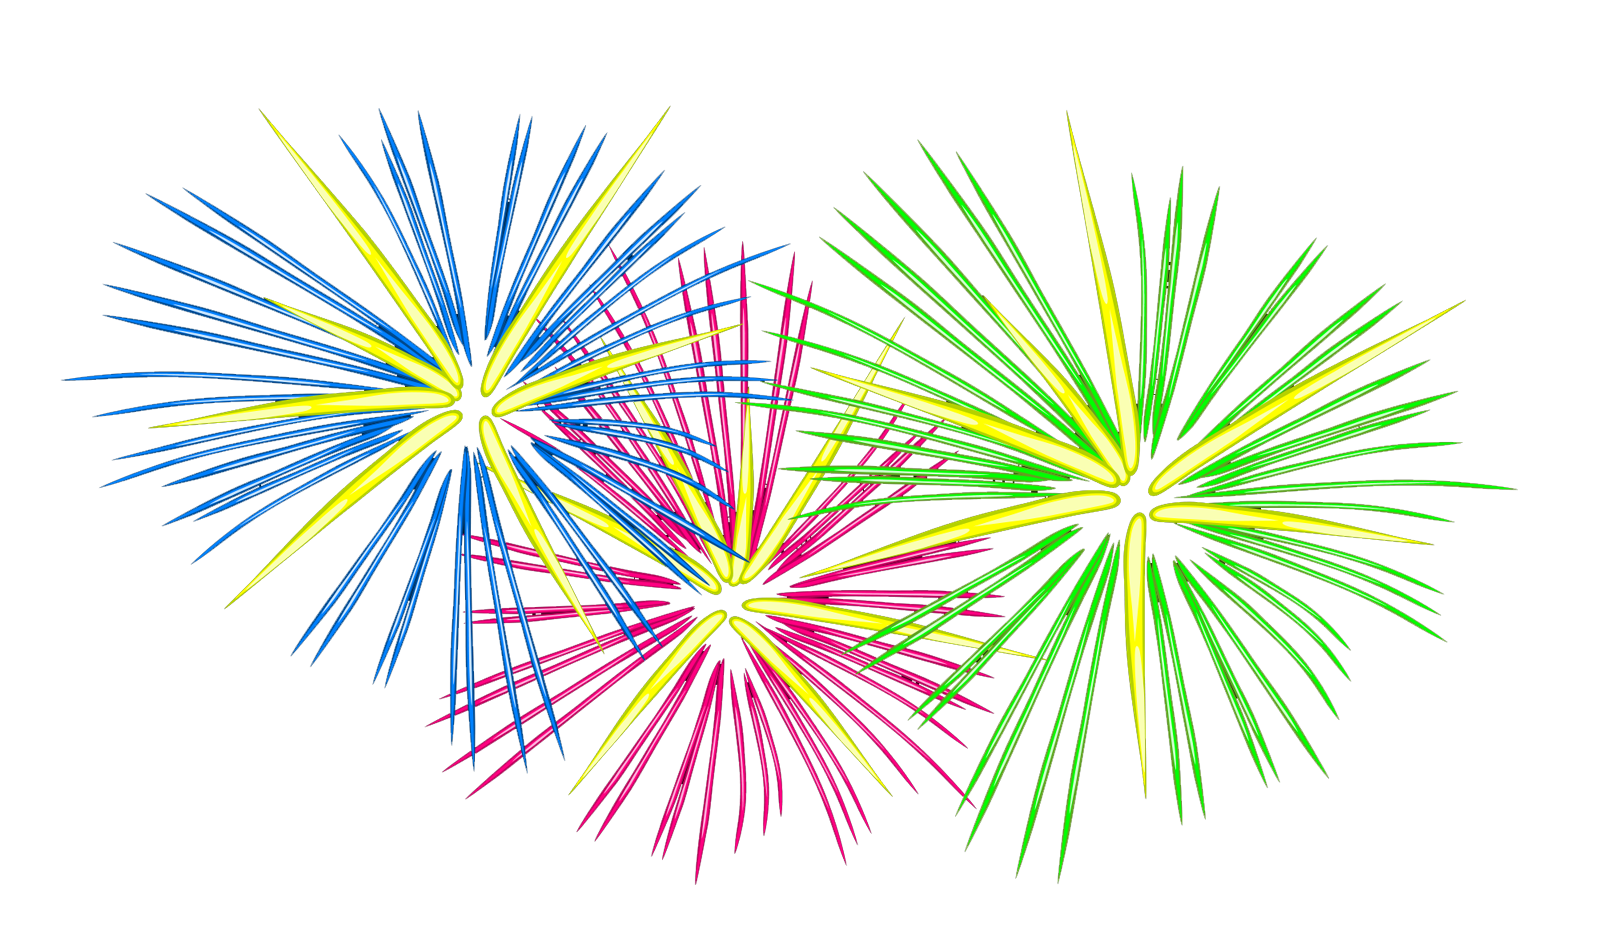 Clipart fireworks psd. Png transparent images free